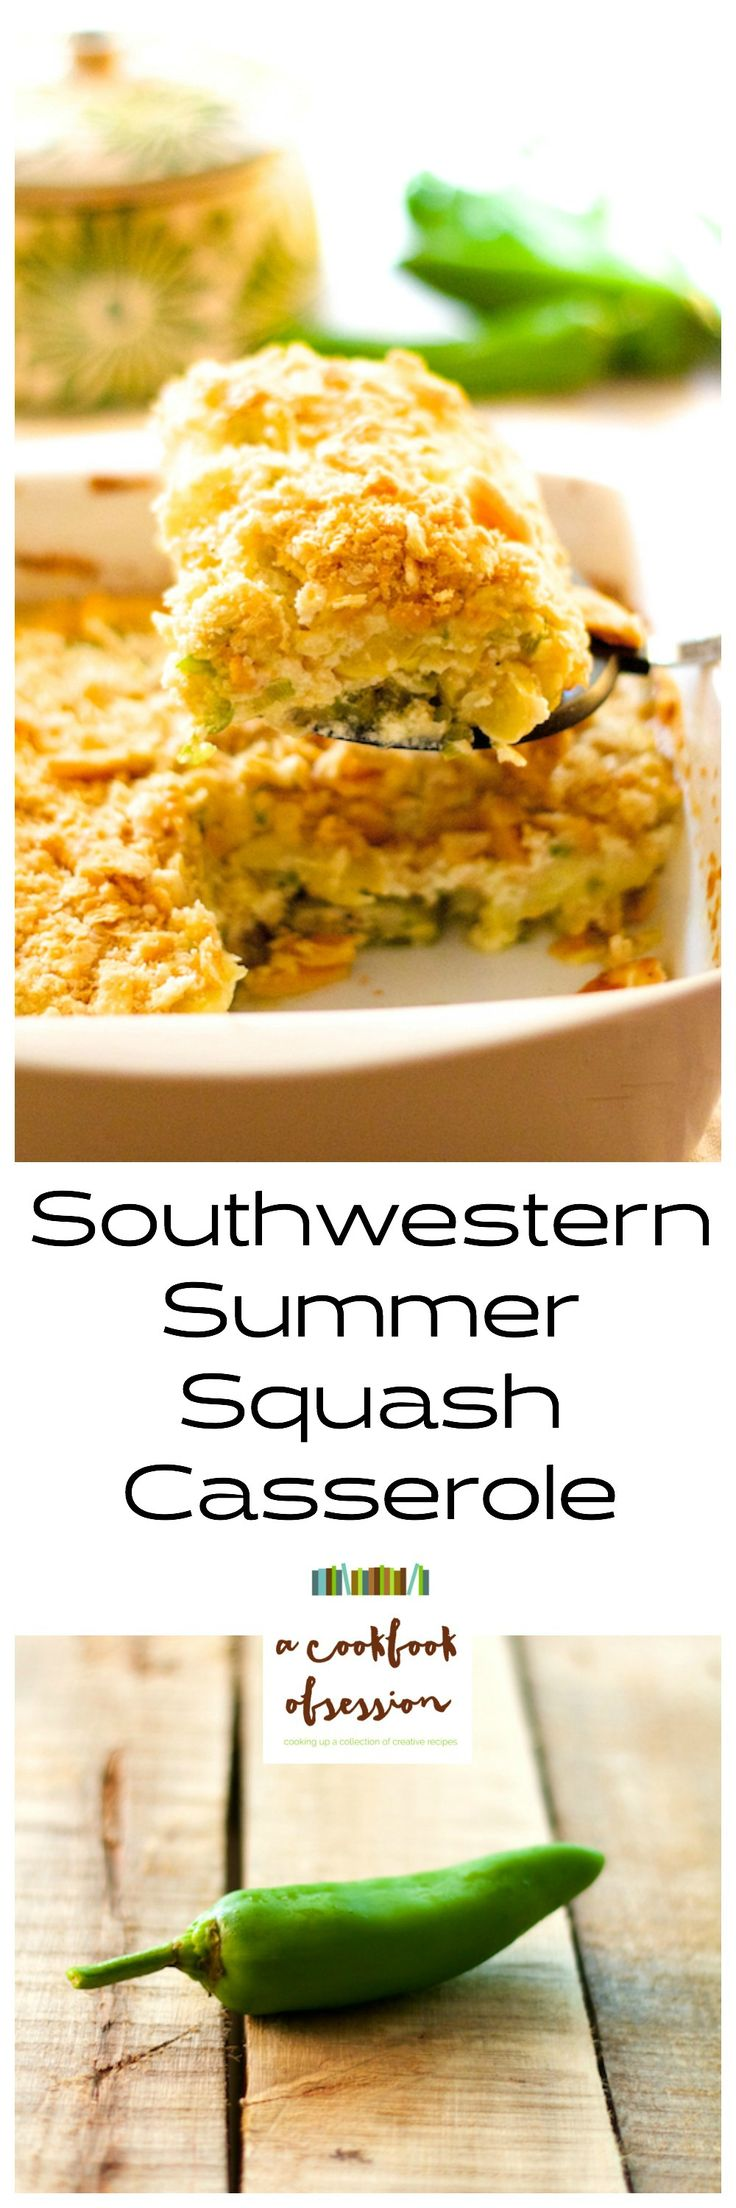 Southwestern Summer Squash Casserole is a new spin on an old Southern classic you're going to love!